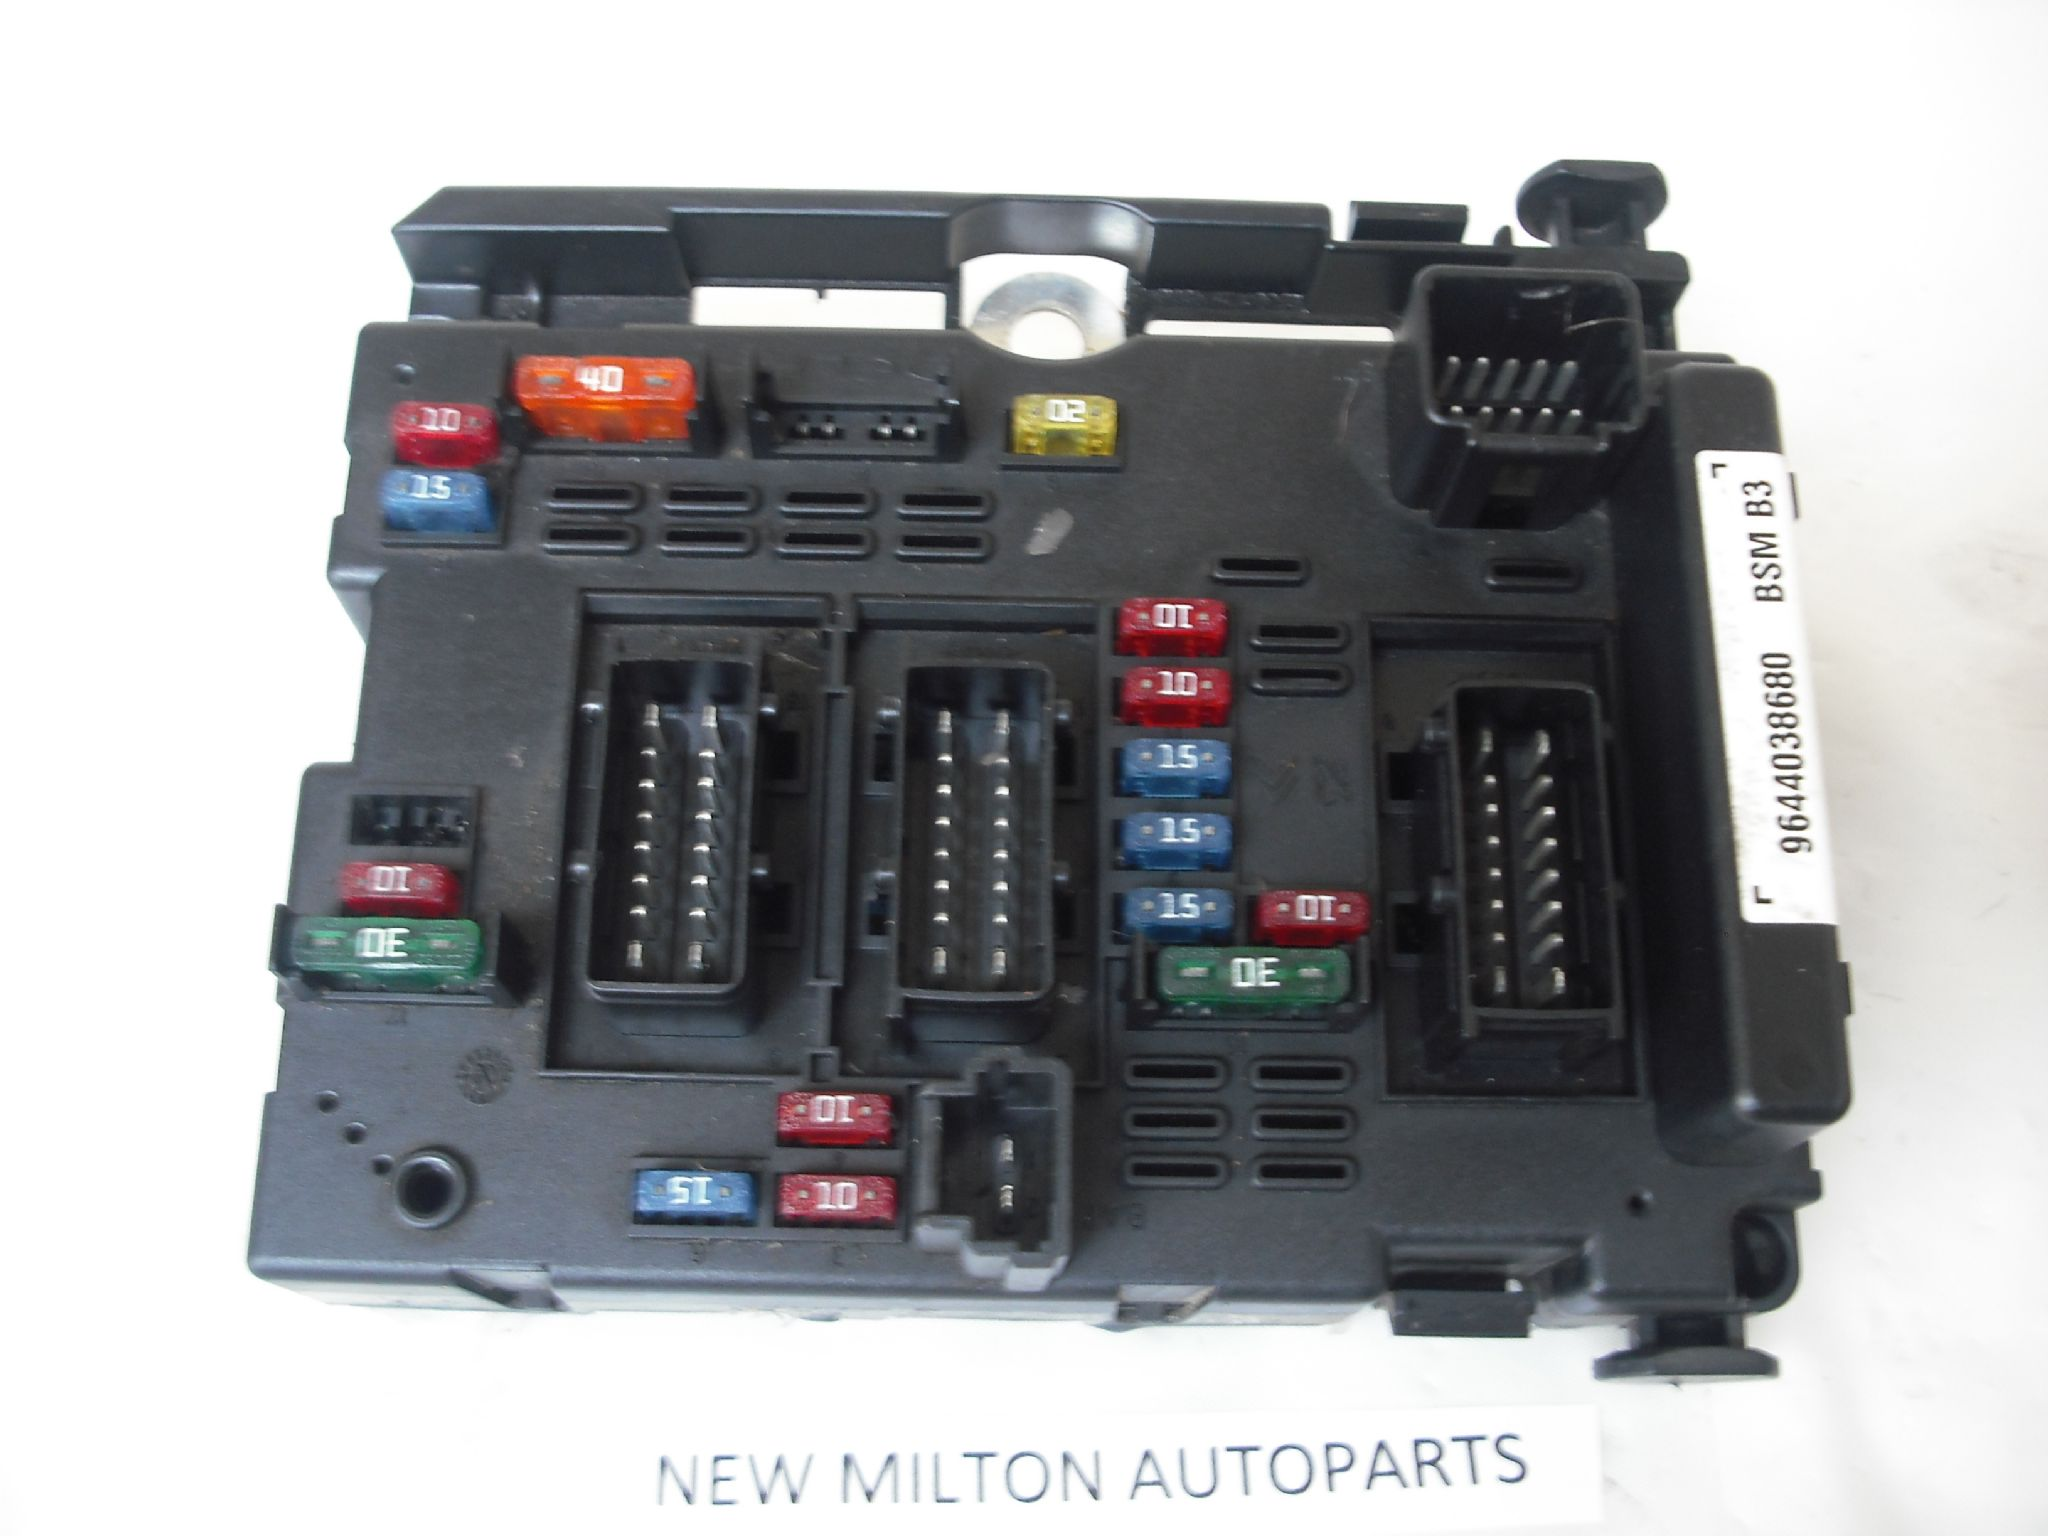 Fuse Box For Citroen Berlingo Auto Electrical Wiring Diagram 1991 Ford E350 Peugeot 307 Partner Controller